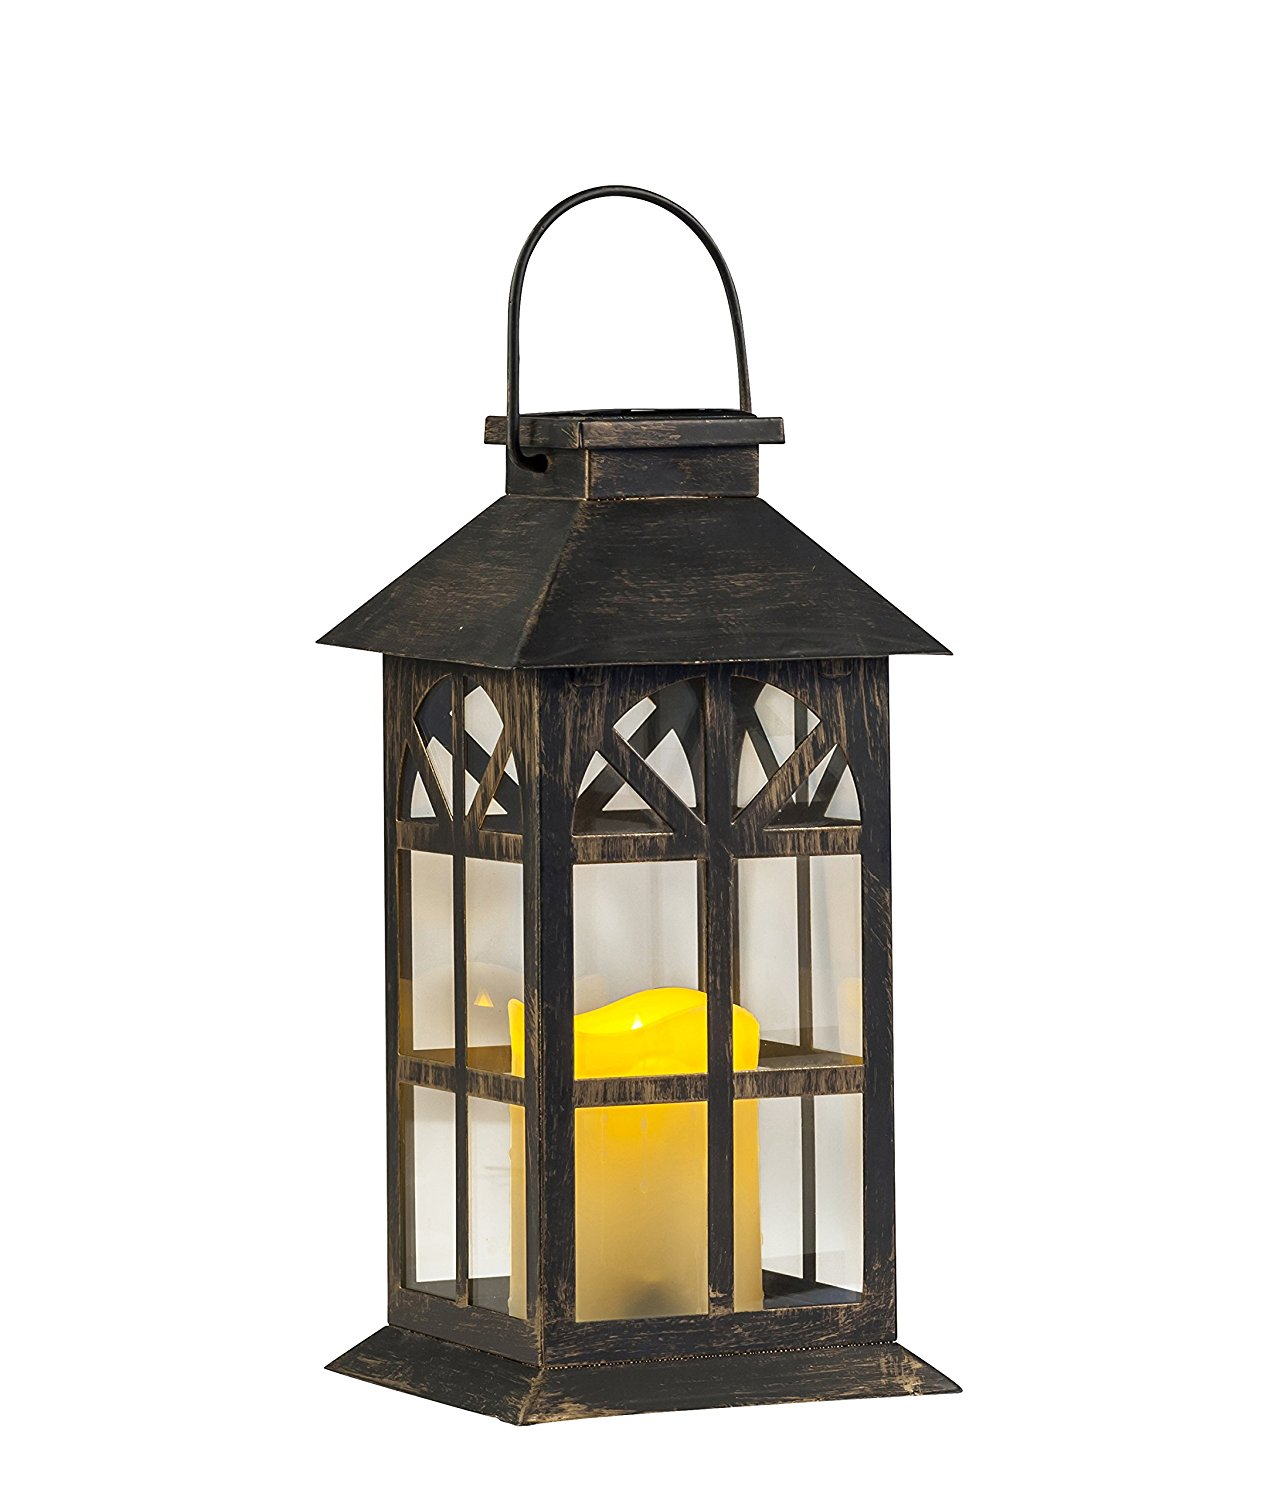 Solar Garden Light Lantern: Best Outdoor Solar Lanterns